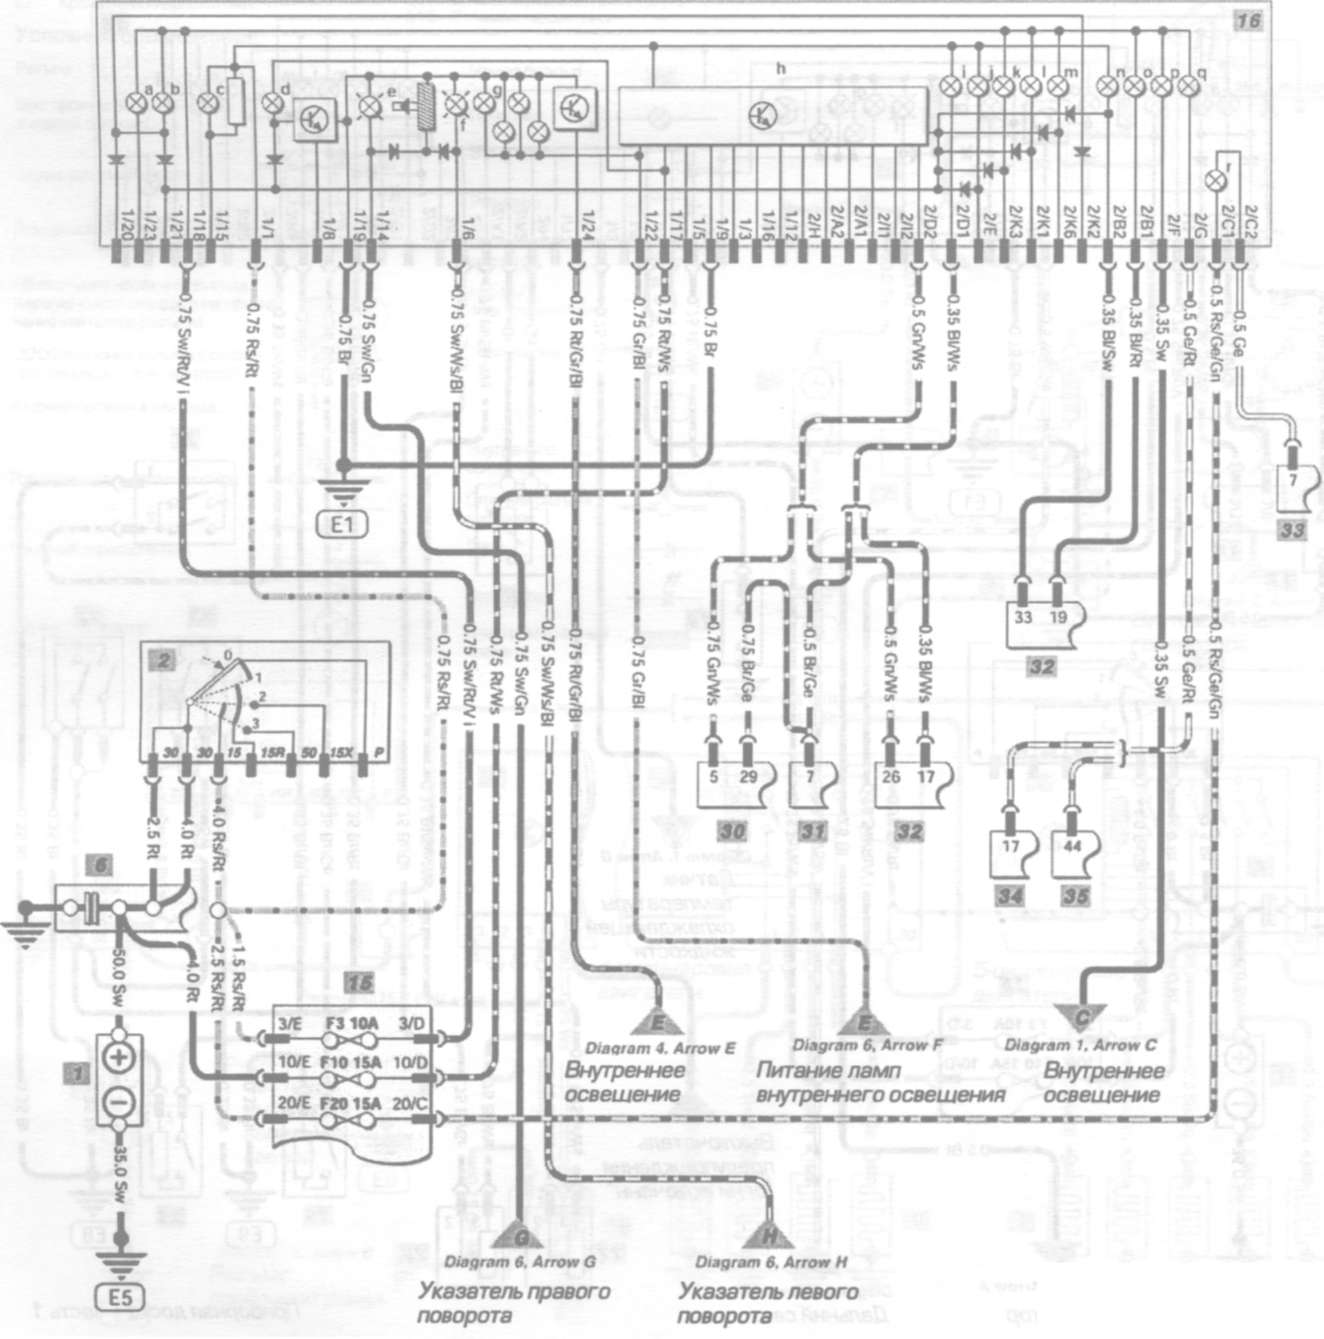 Wiring Diagram For Mercedes C200